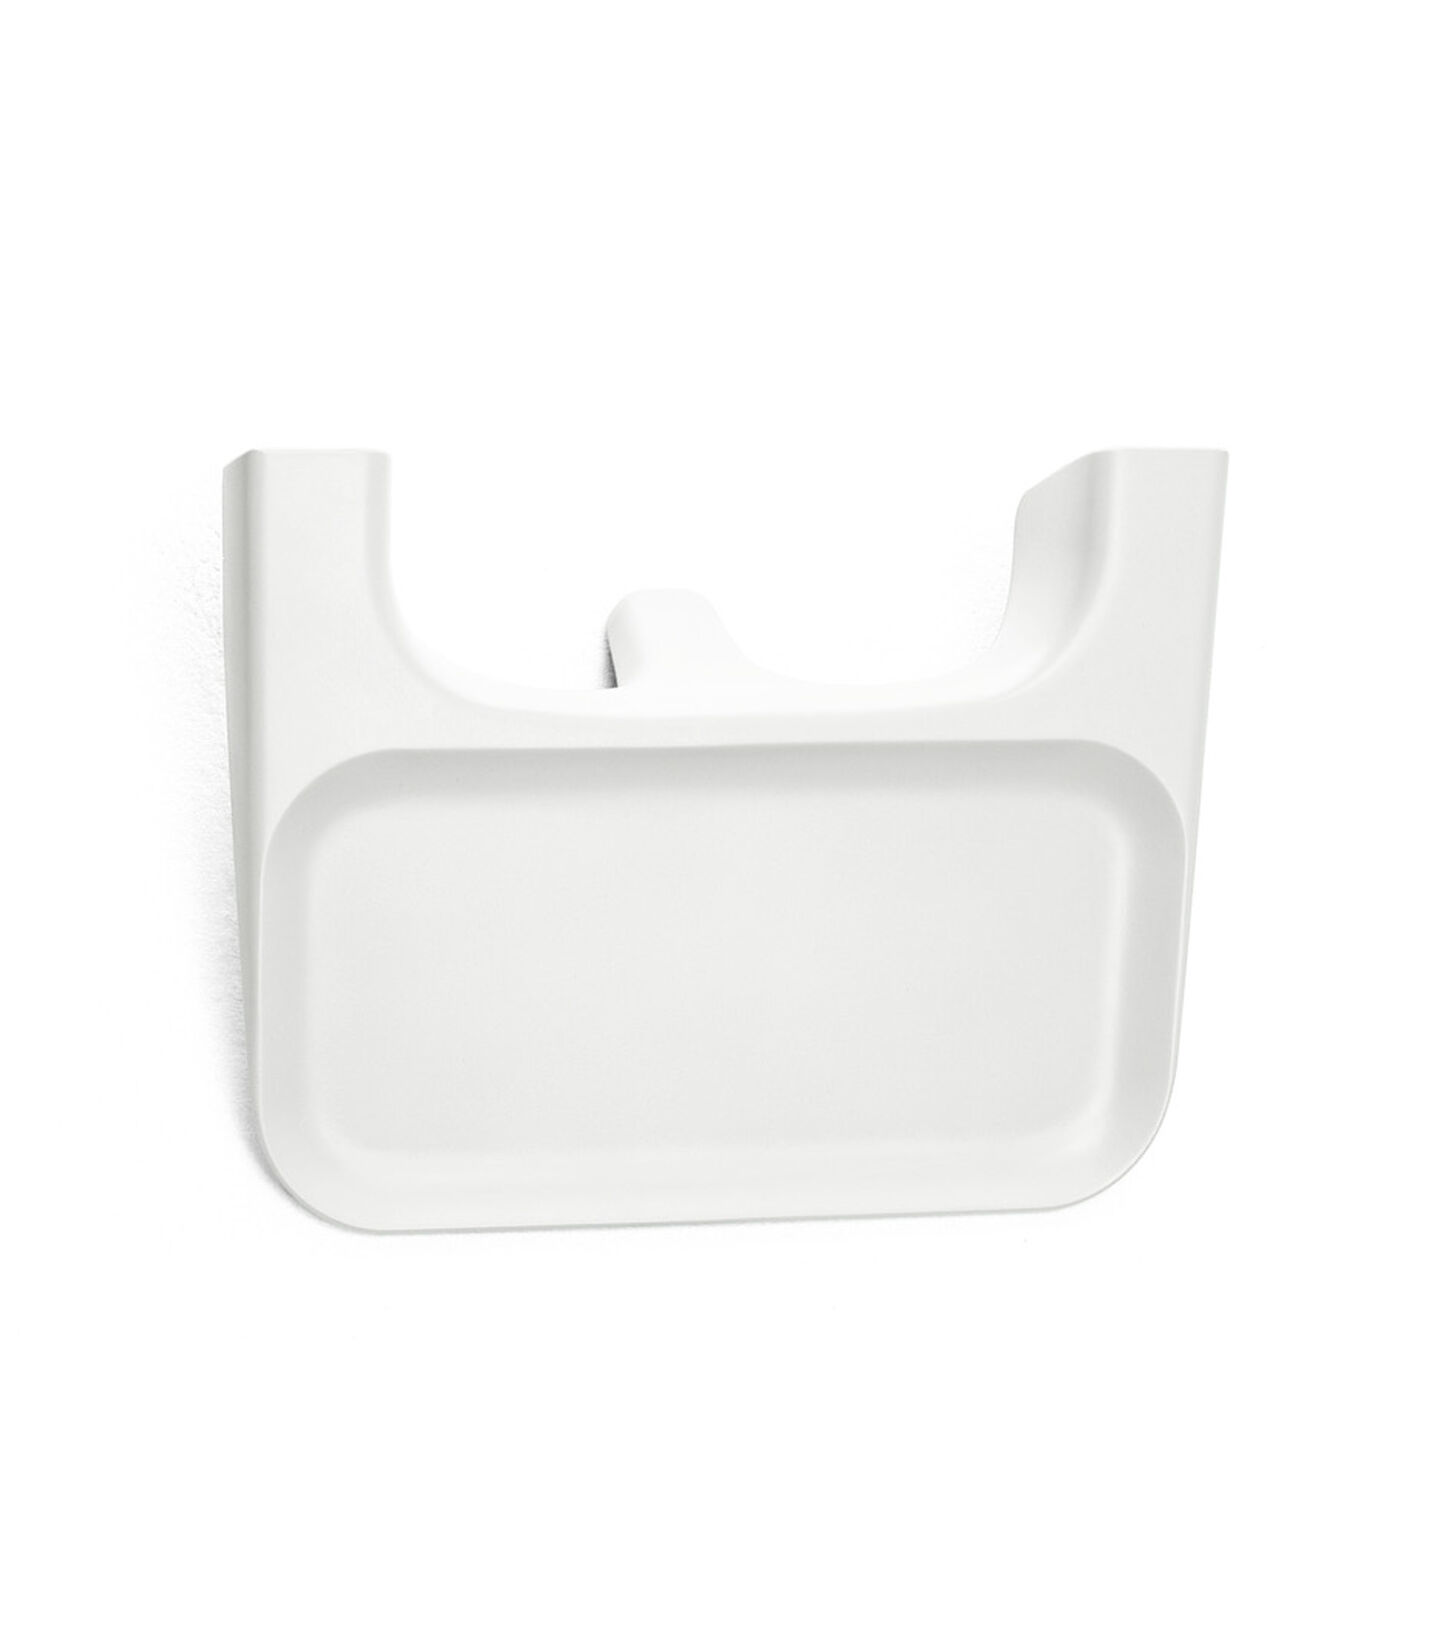 Stokke® Clikk™ Tray - White, White, mainview view 2